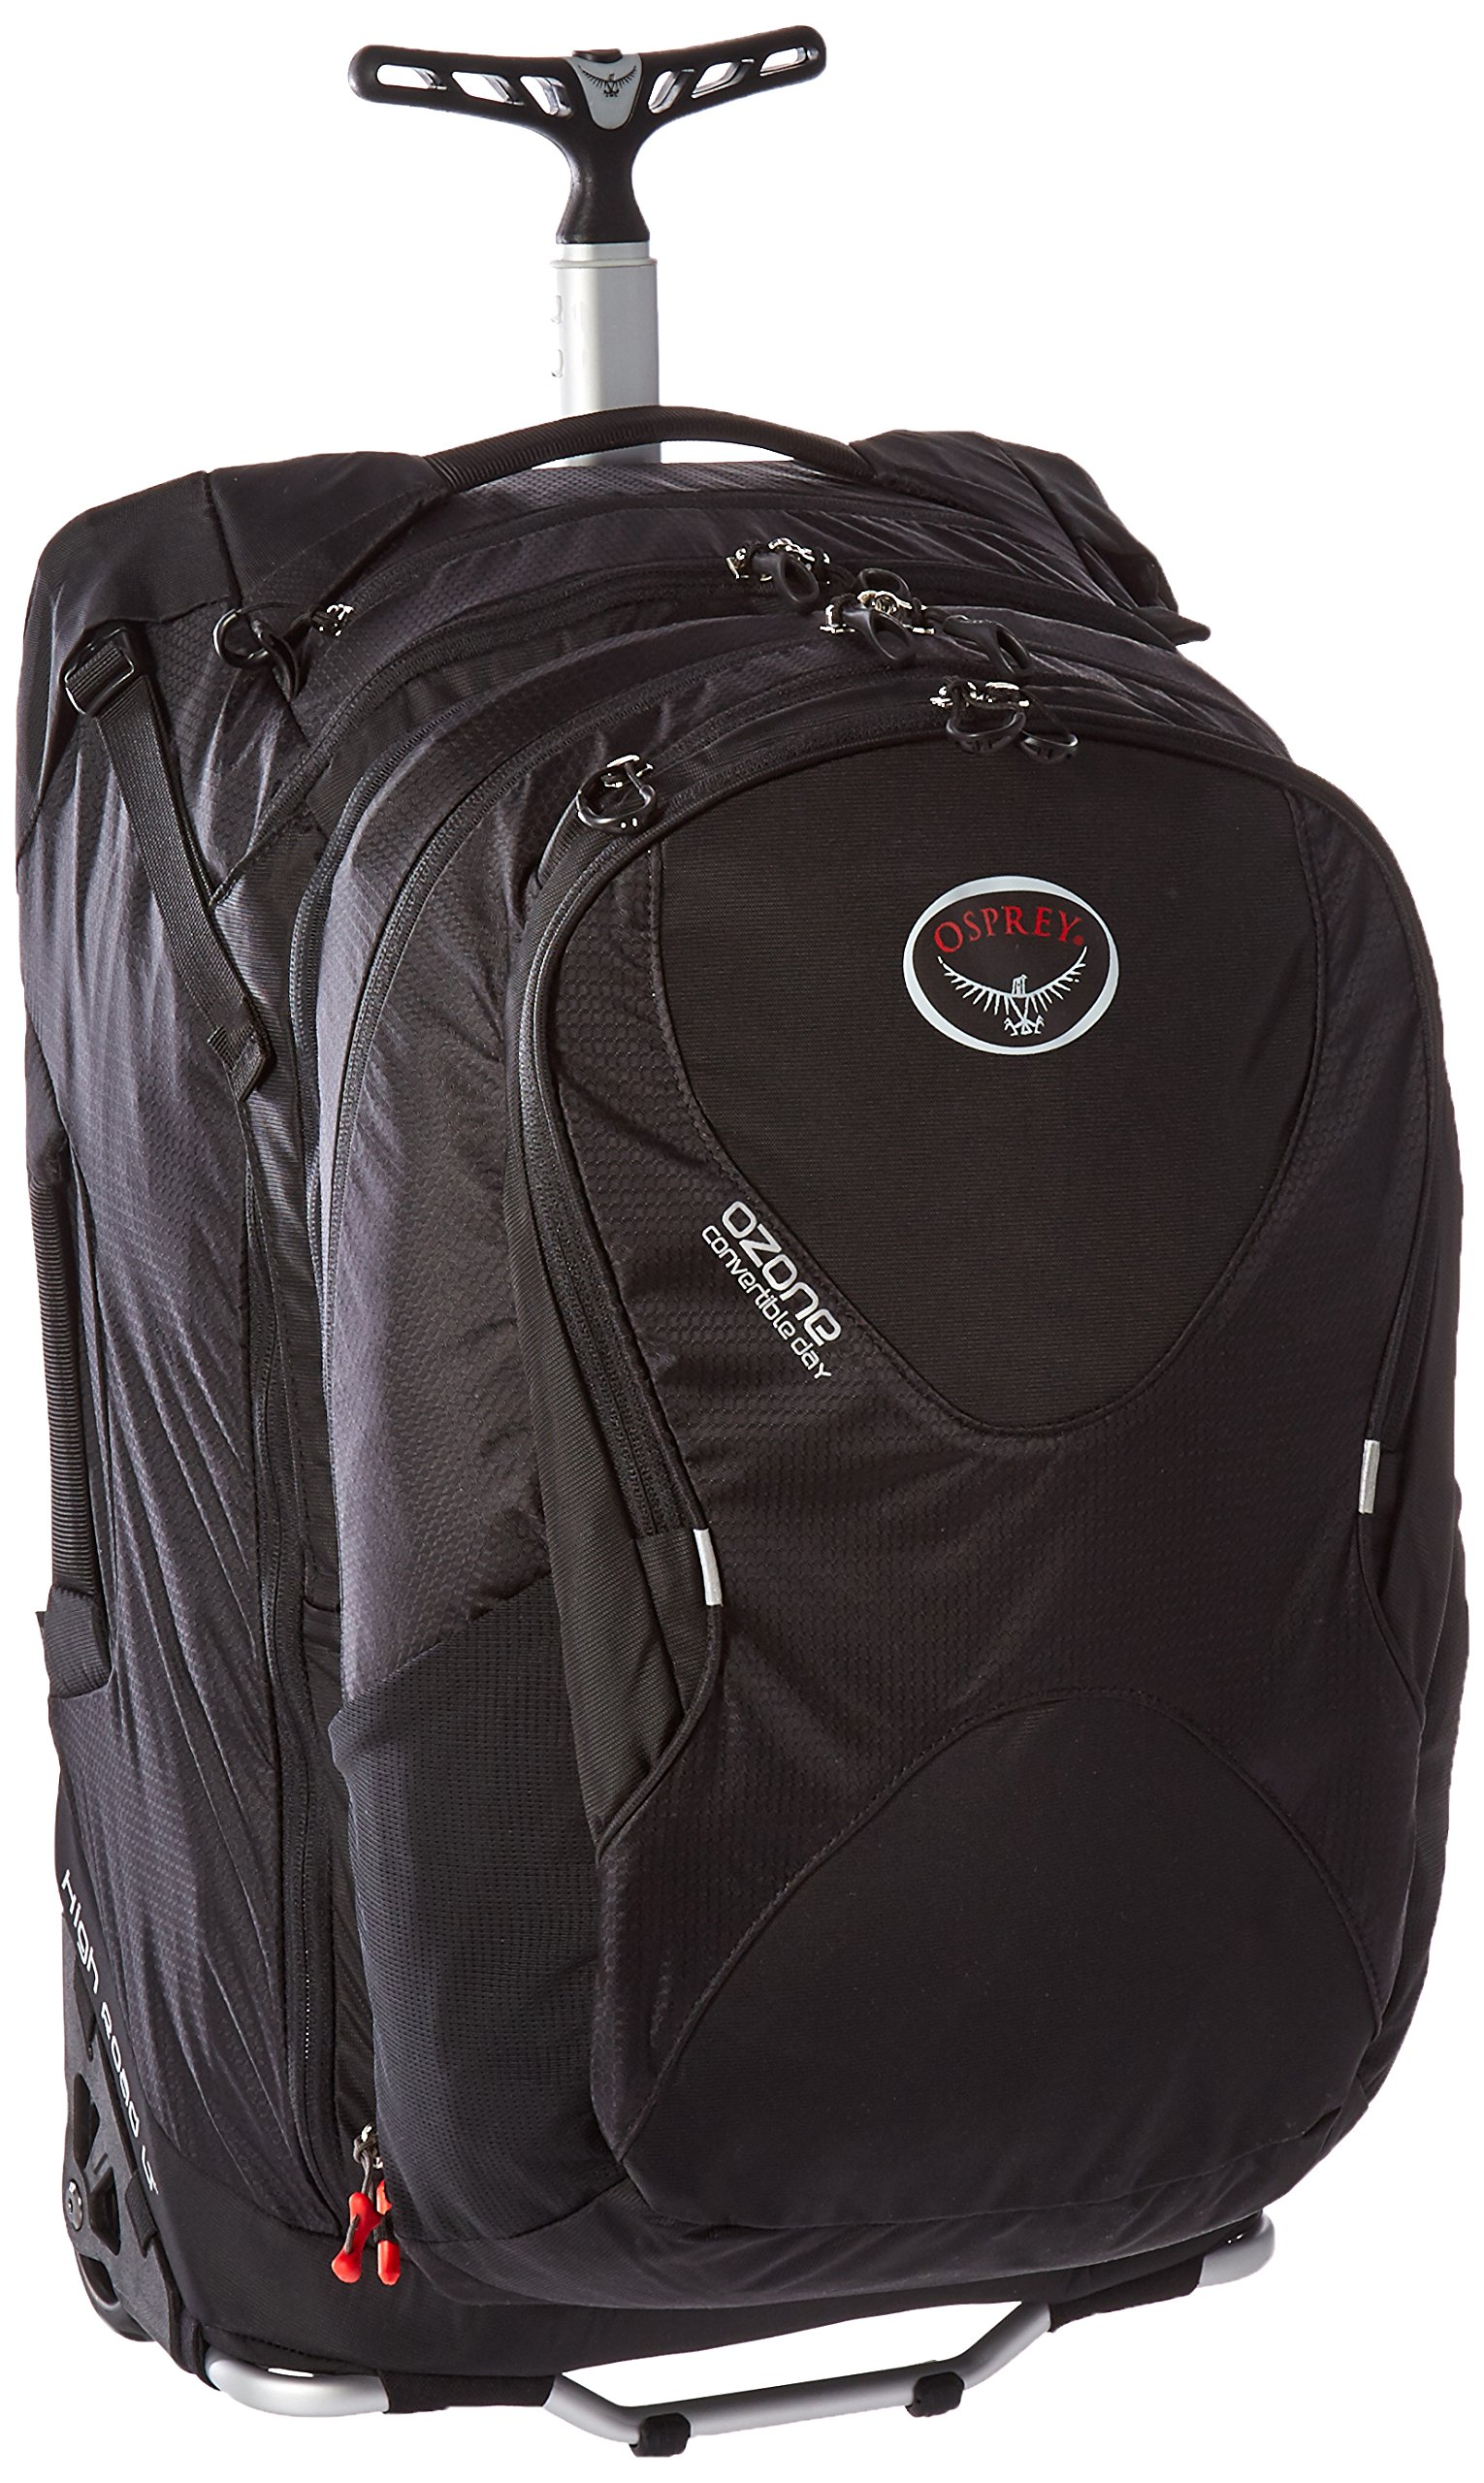 Osprey Ozone Convertible 22''/50L Wheeled Luggage, Black